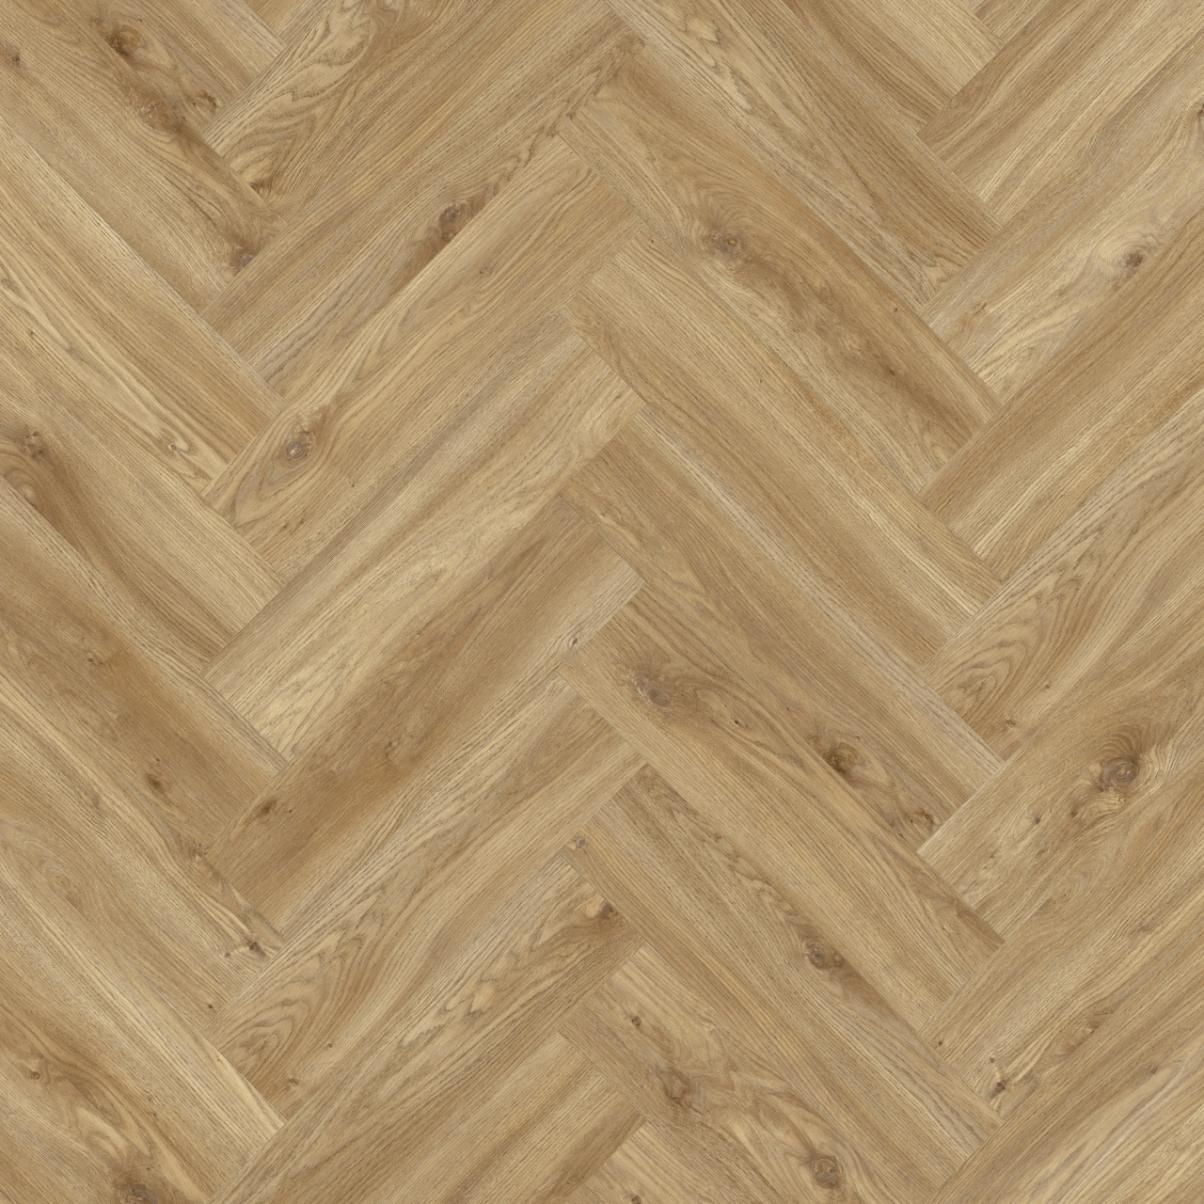 ПВХ  Модулео PARQUETRY SHORT Impress 58346 Sierra Oak (2,5мм-0,55мм)